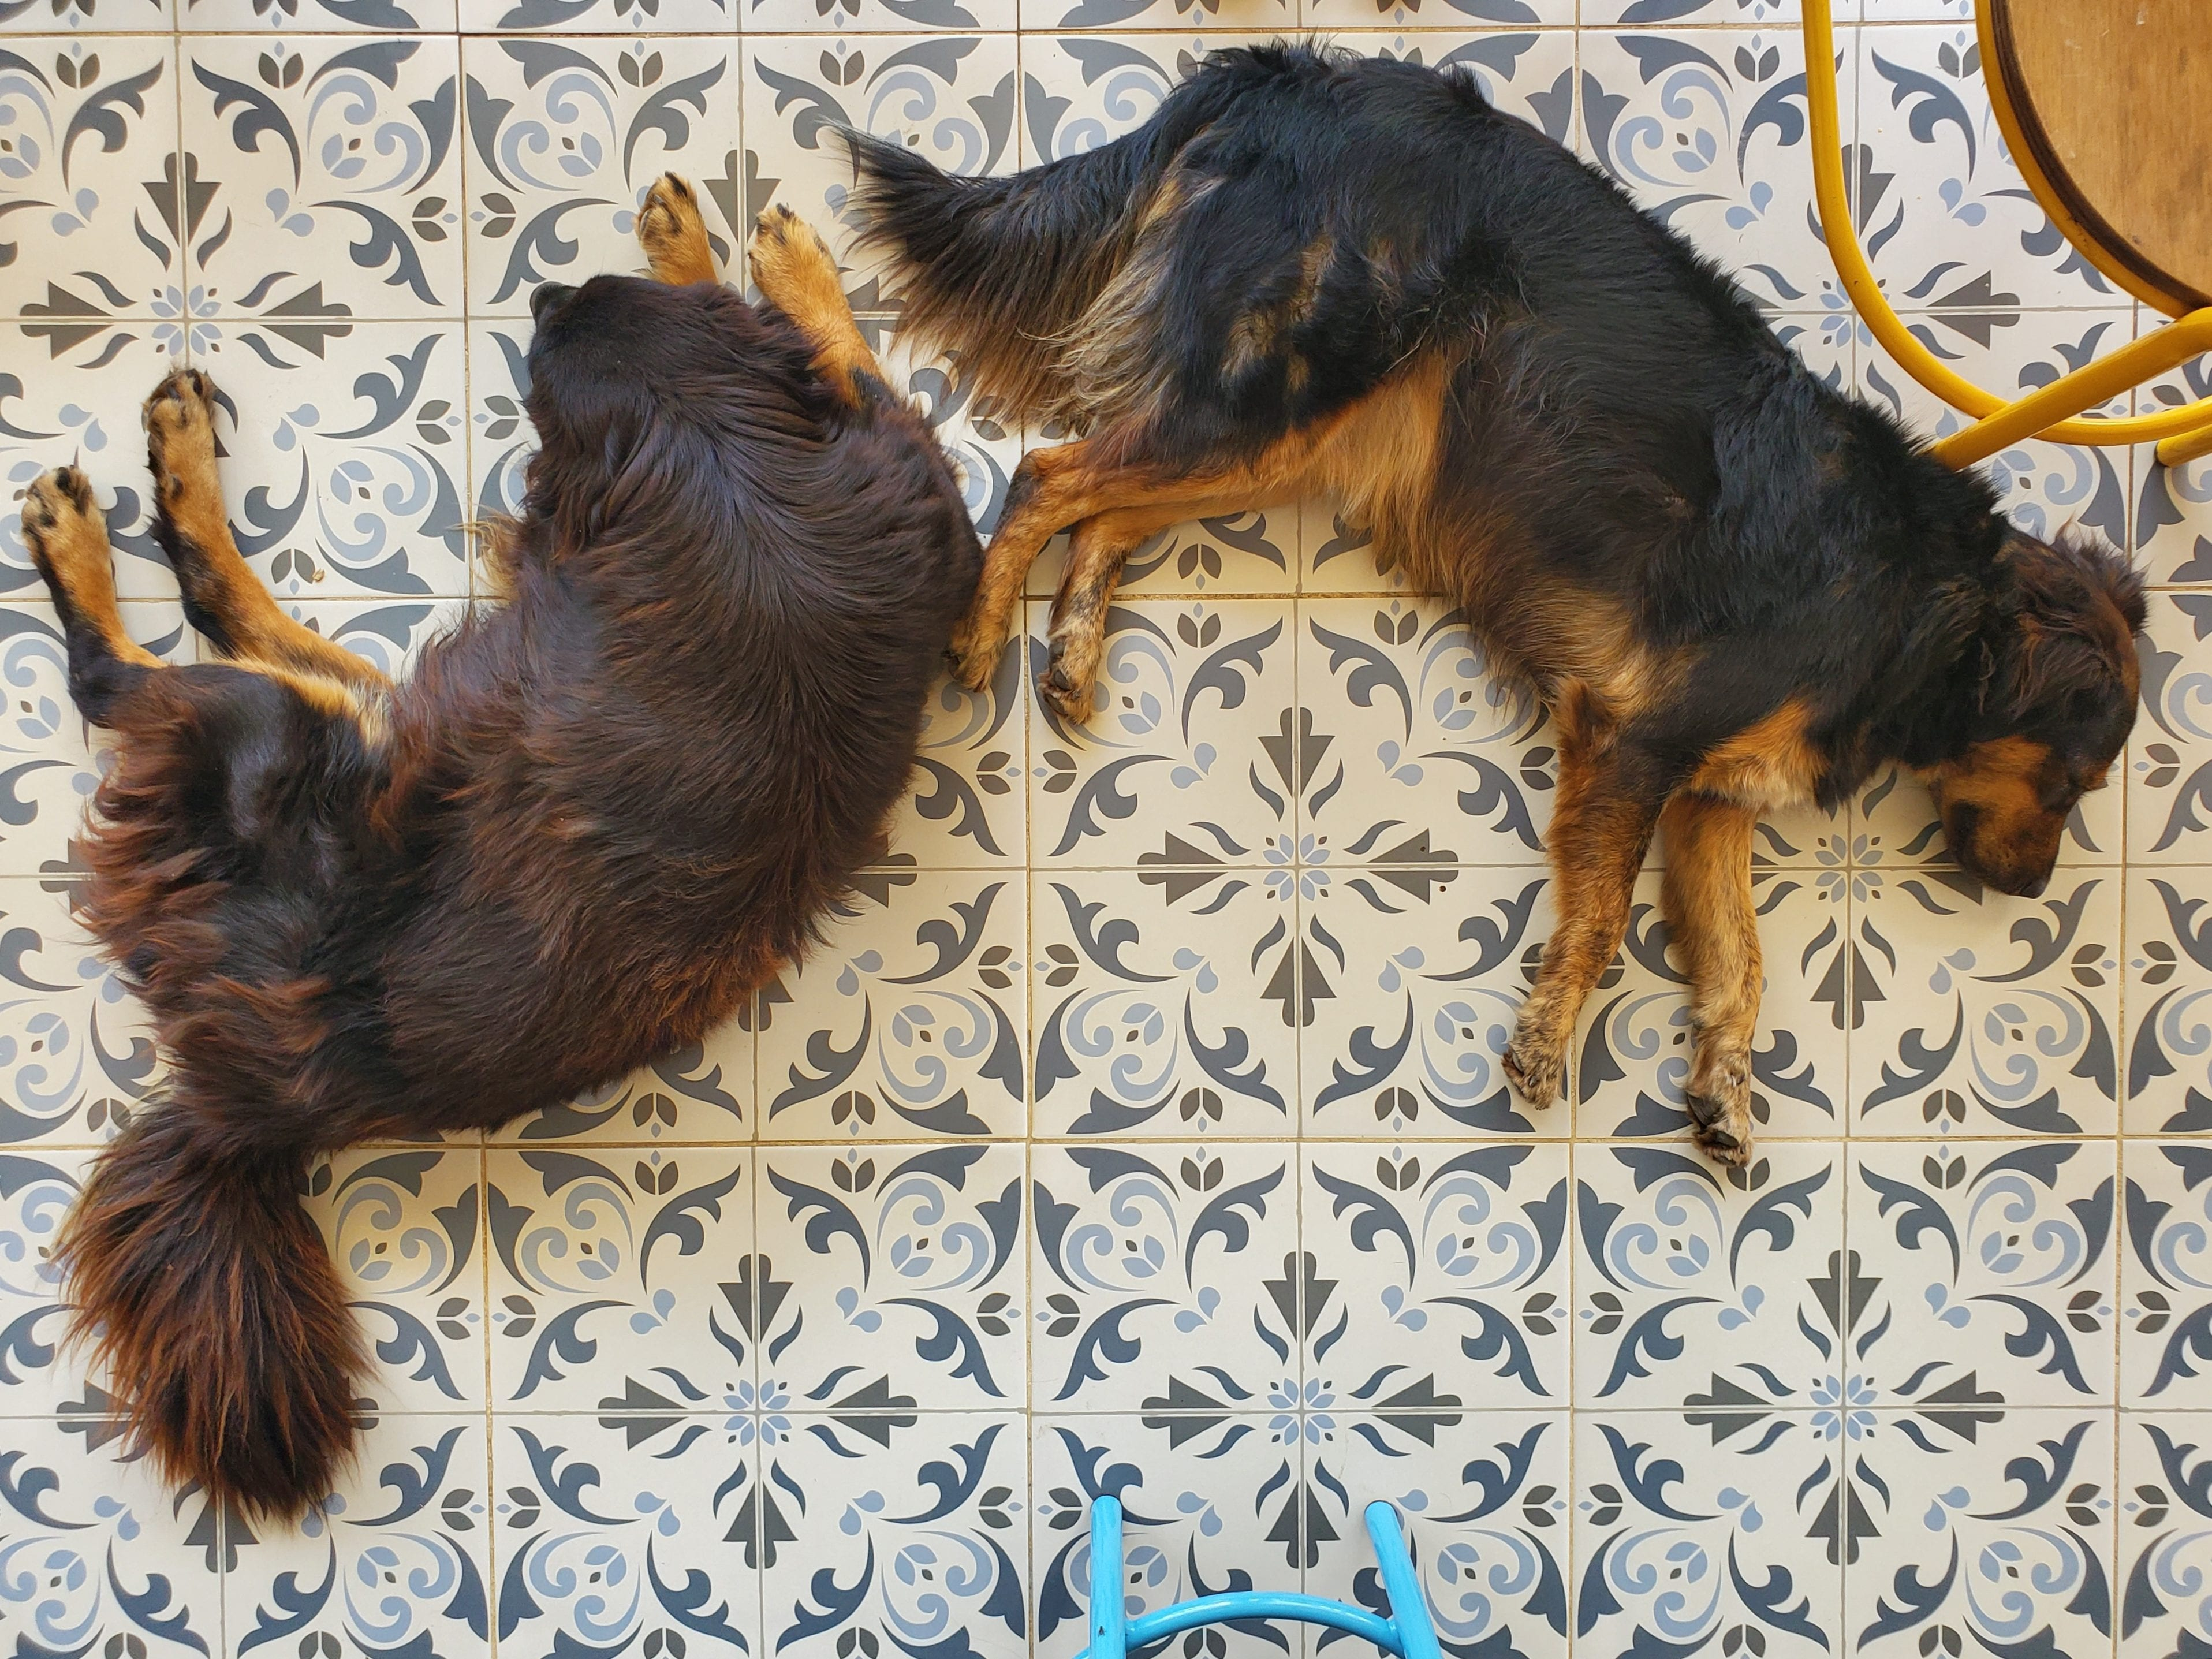 Dogs laying down in Jardin cafe